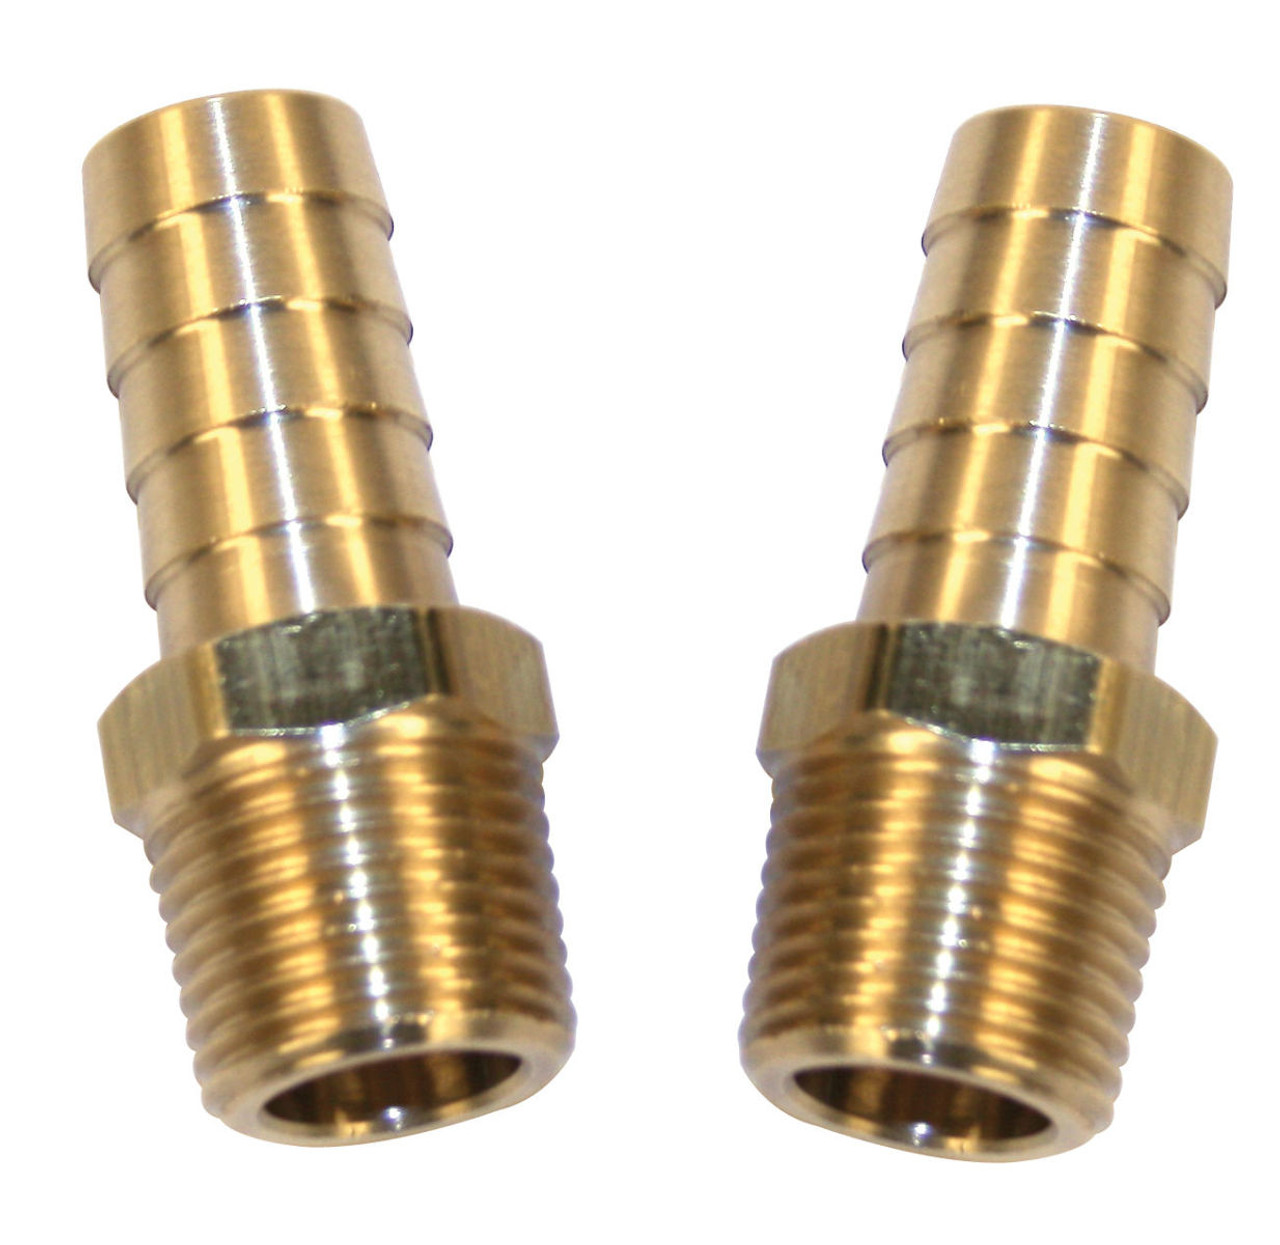 Brass Fitting, 1/2 Male NPT w/ 1/2 Hose Barb, Pack Of 2, Fits VW Air Cooled, EMPI 9214